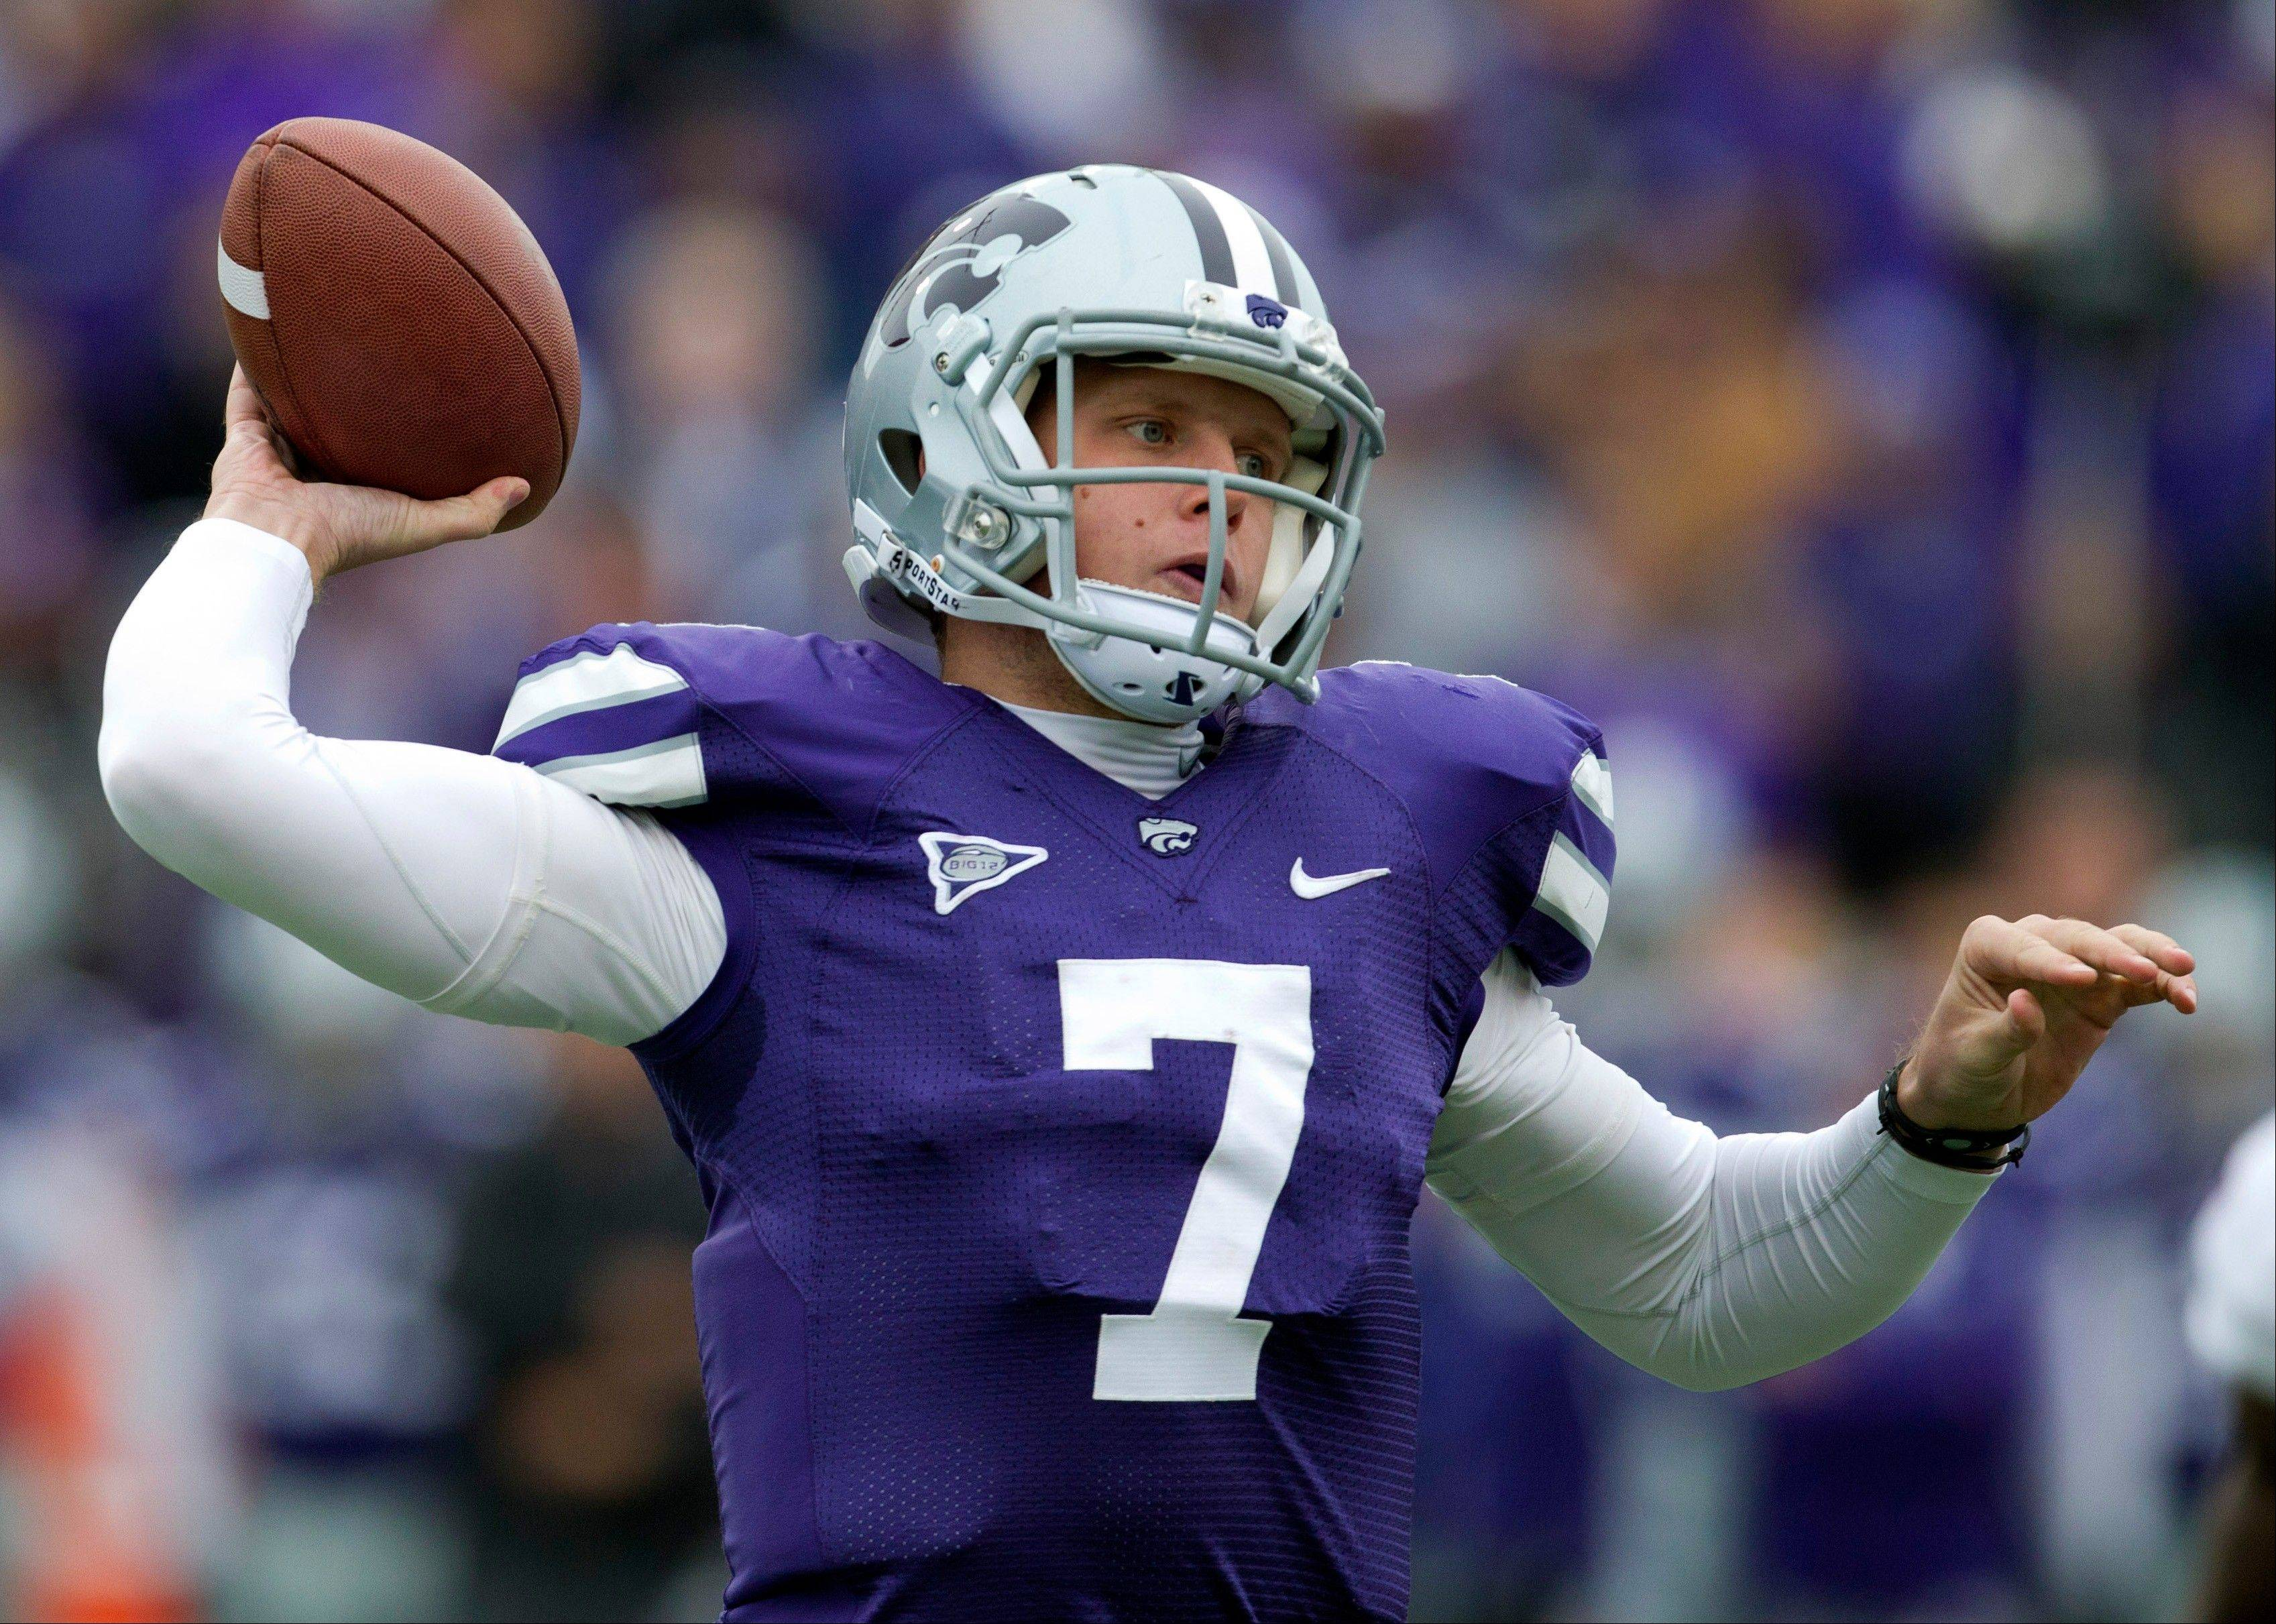 Kansas State quarterback Collin Klein throws a pas during the first half Saturday against Kansas in Manhattan, Kan.